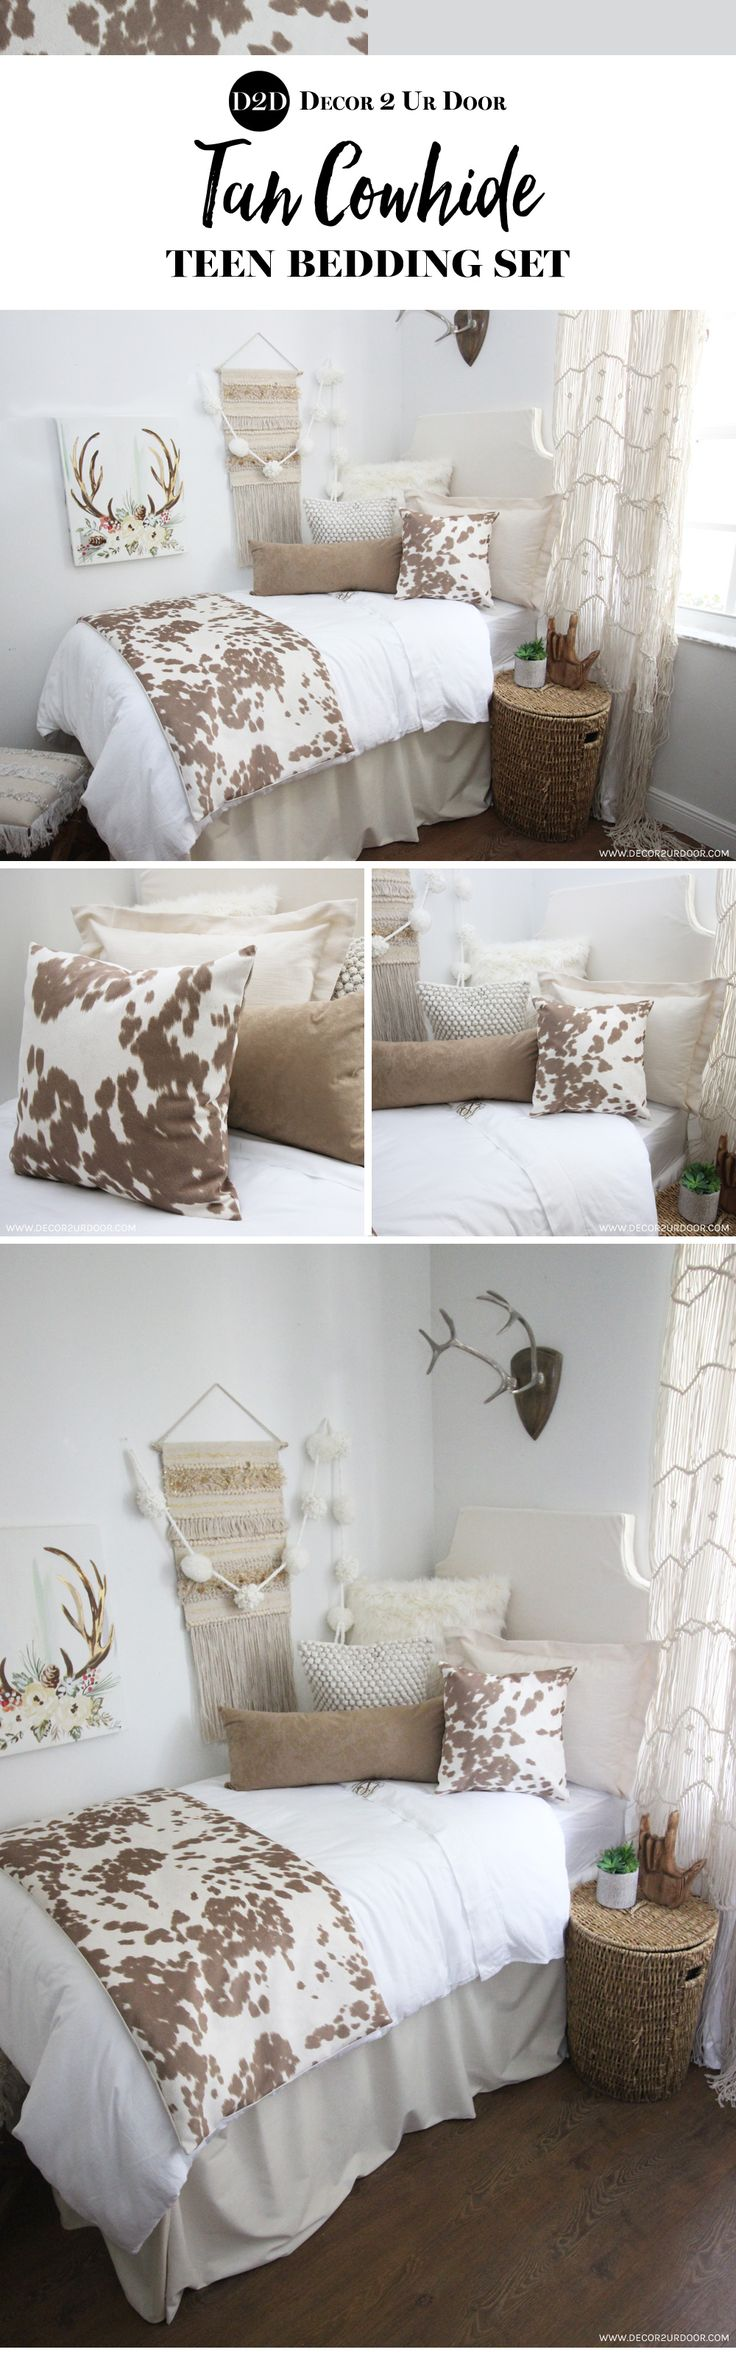 Holy COW-hide! This rustic farmhouse teen bedding set features simple neutrals and linens with textured fur, suede, and super-soft cowhide fabric. Y'all can't go wrong with cowhide teen bedding!